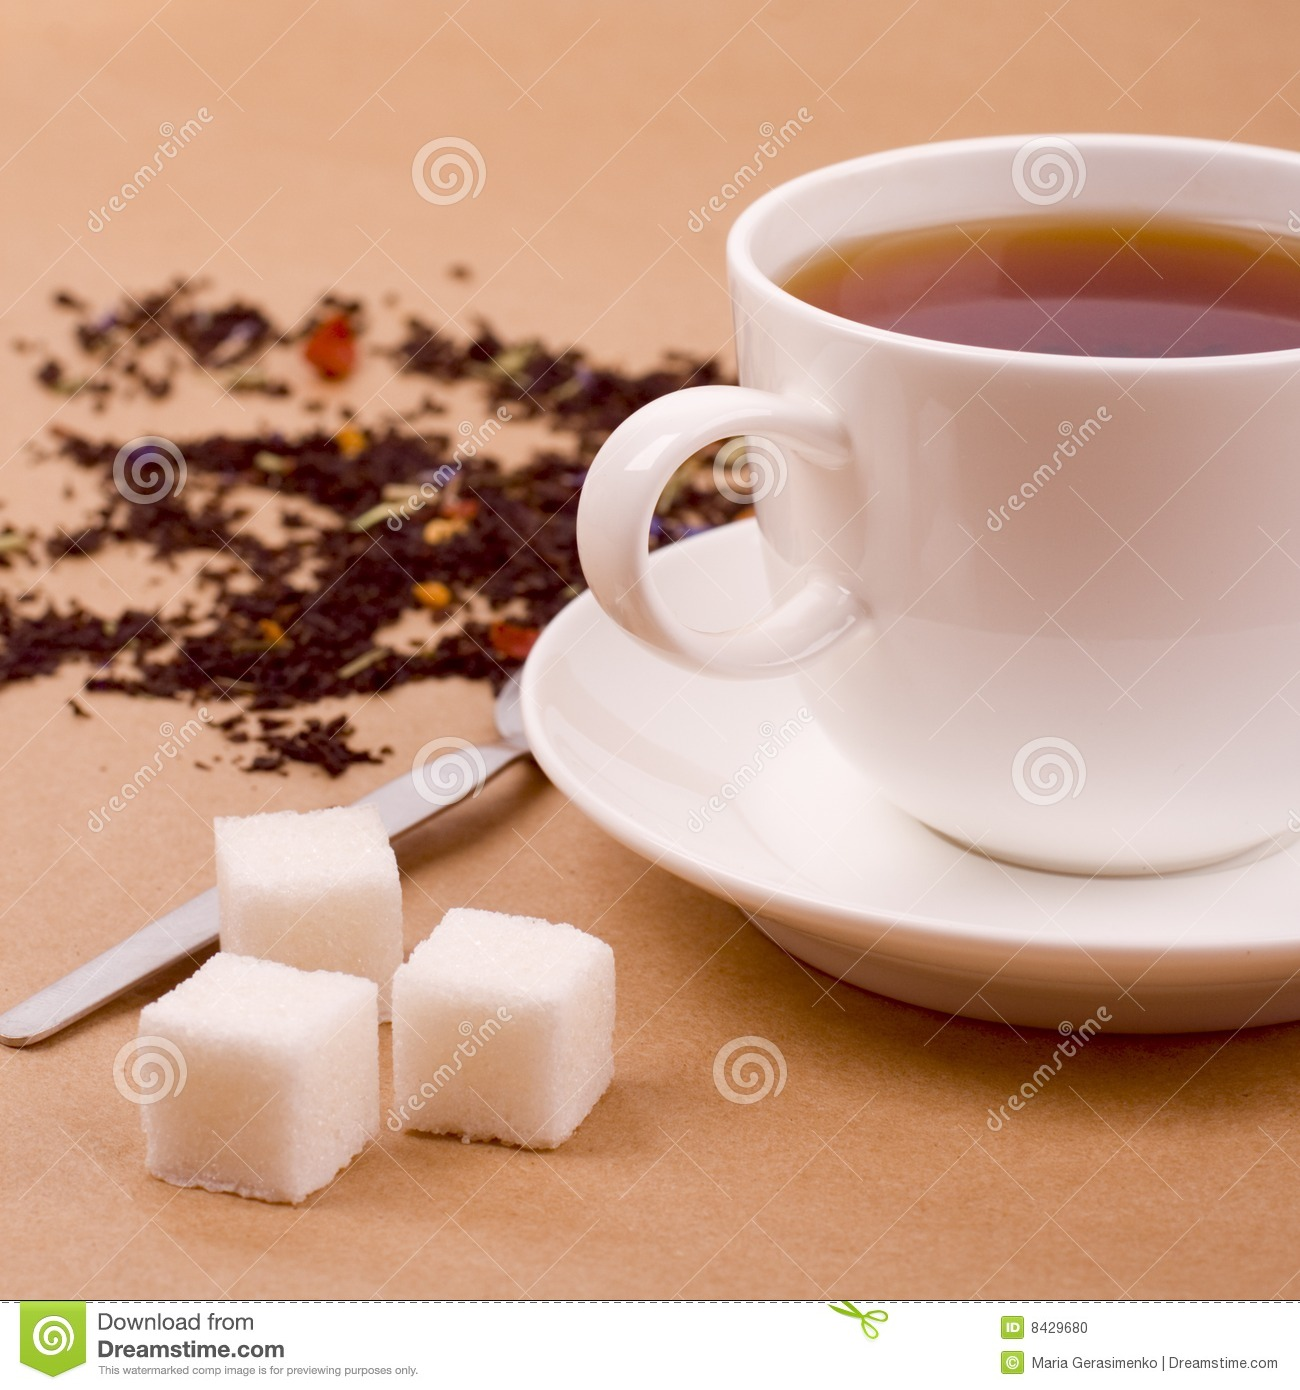 Cup of tea and sugar